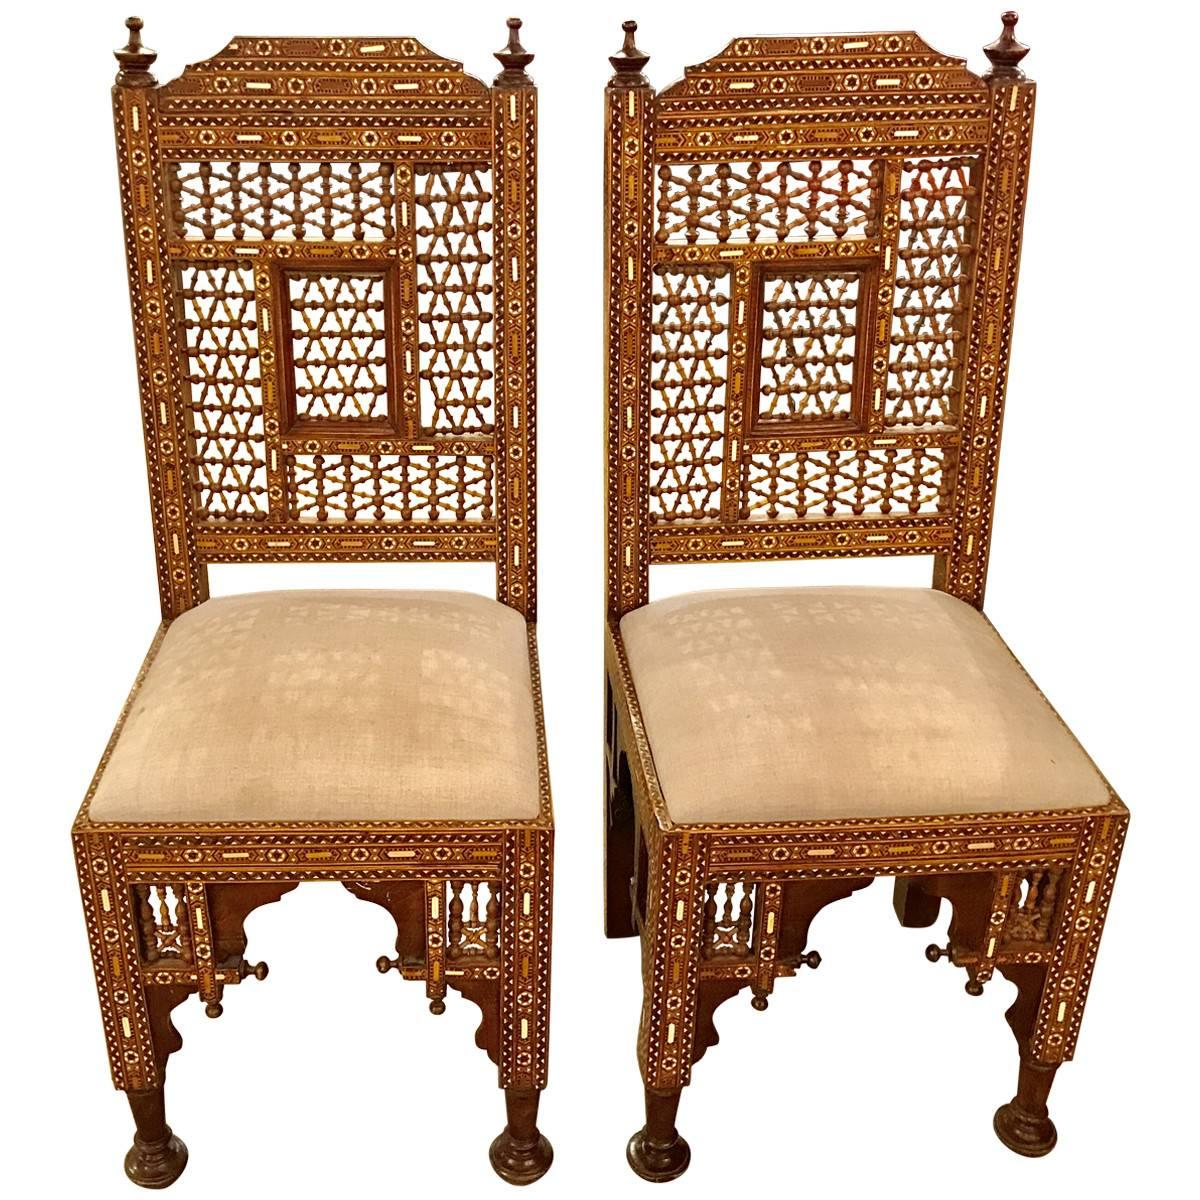 Moroccan / Syrian Moorish Inlaid Chairs, Pair For Sale